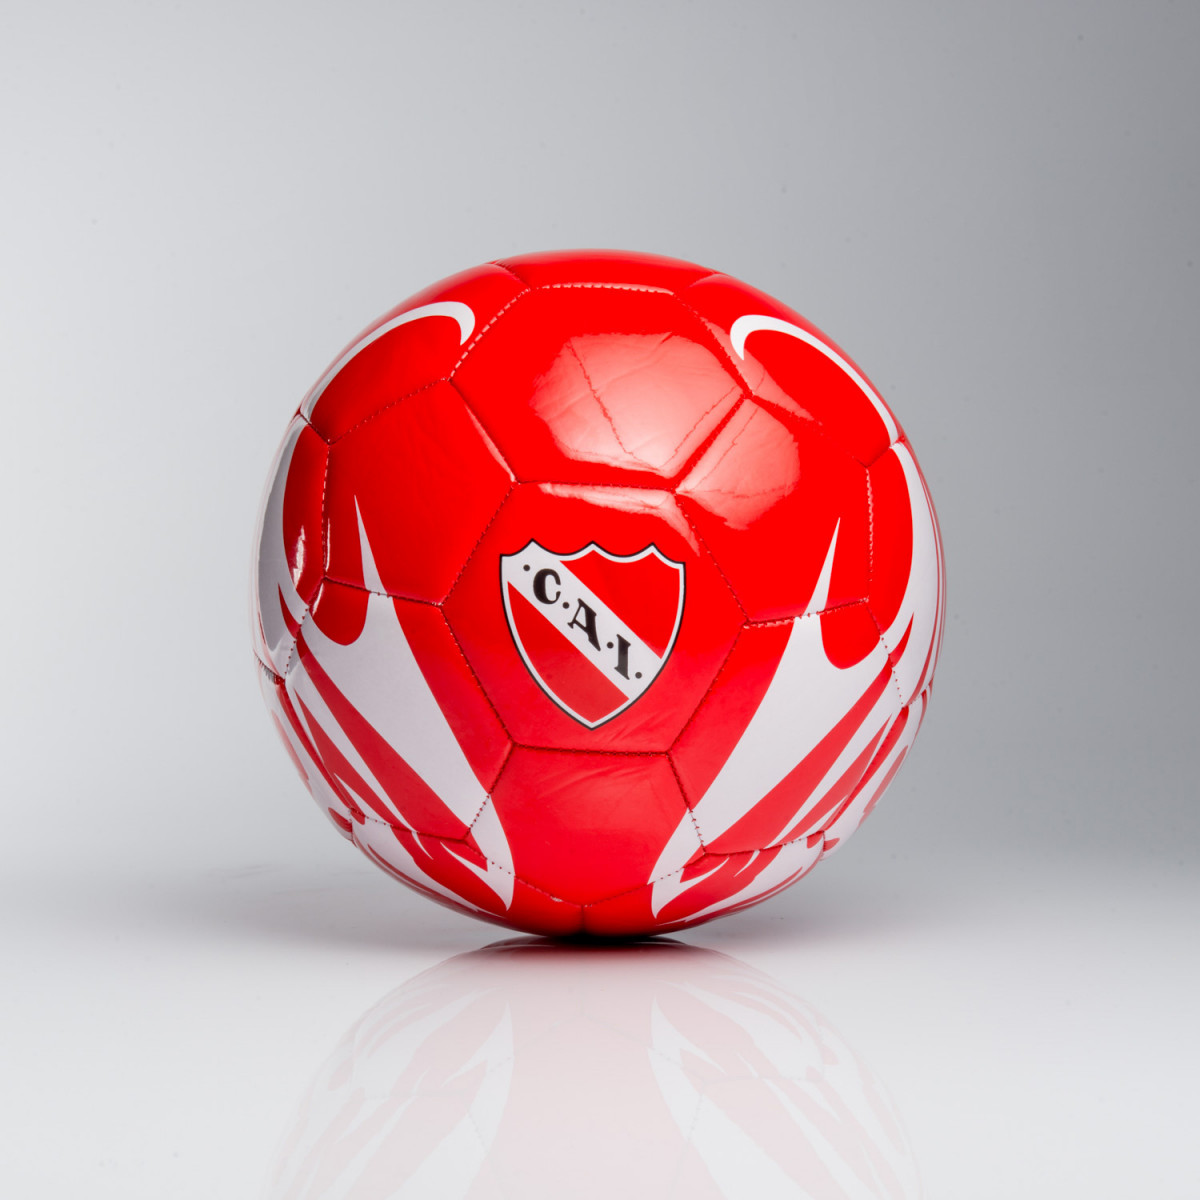 PELOTA INDEPENDIENTE 2016